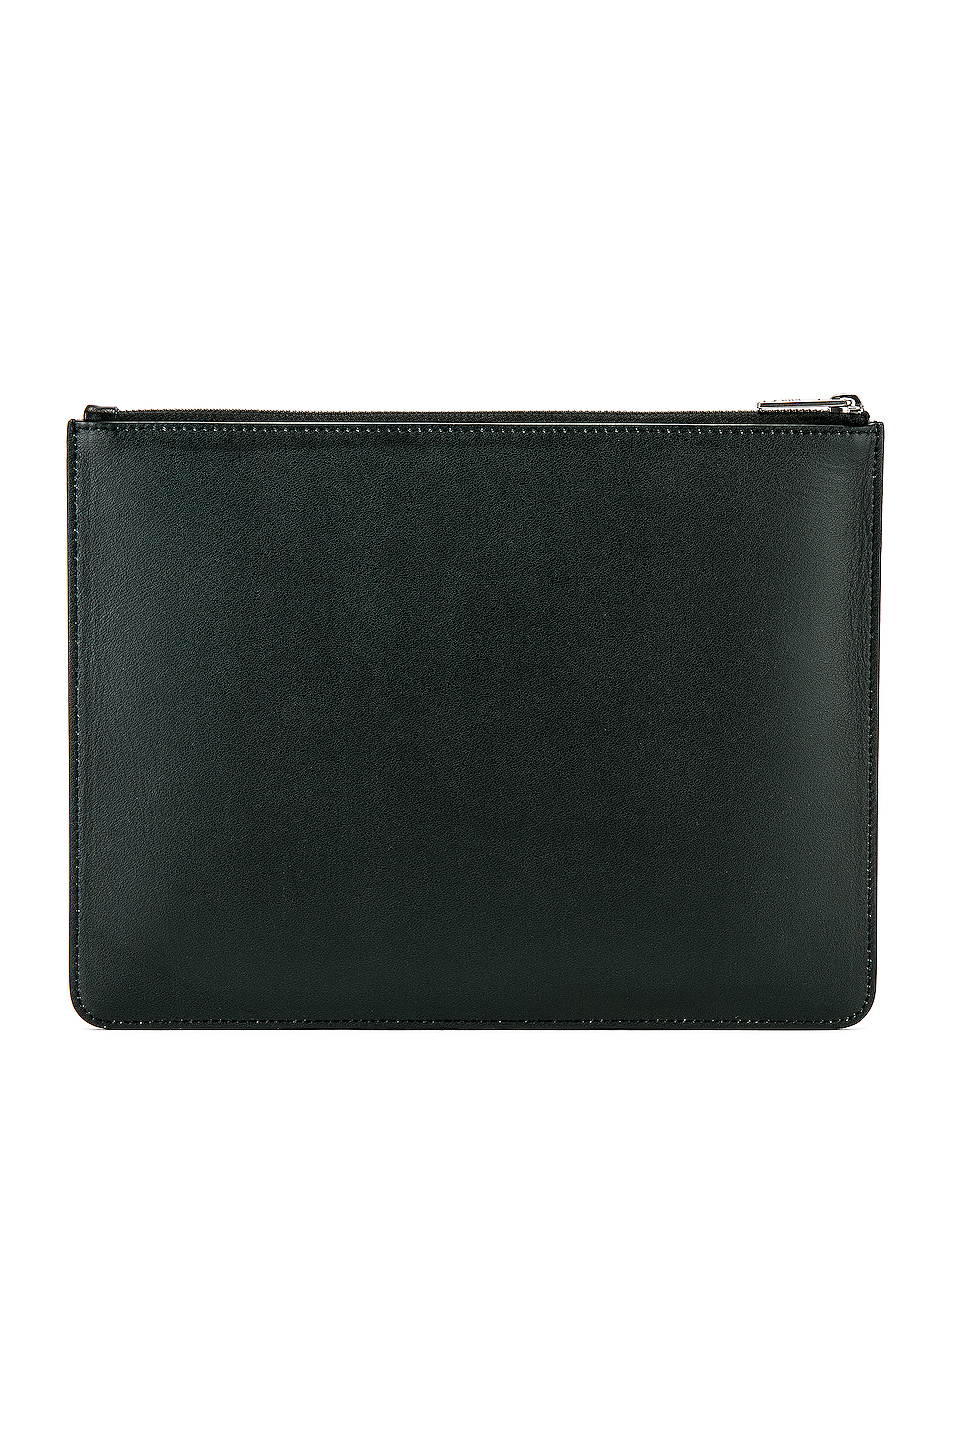 86c5fdc1de6 Fading Logo Large Pouch, Givenchy